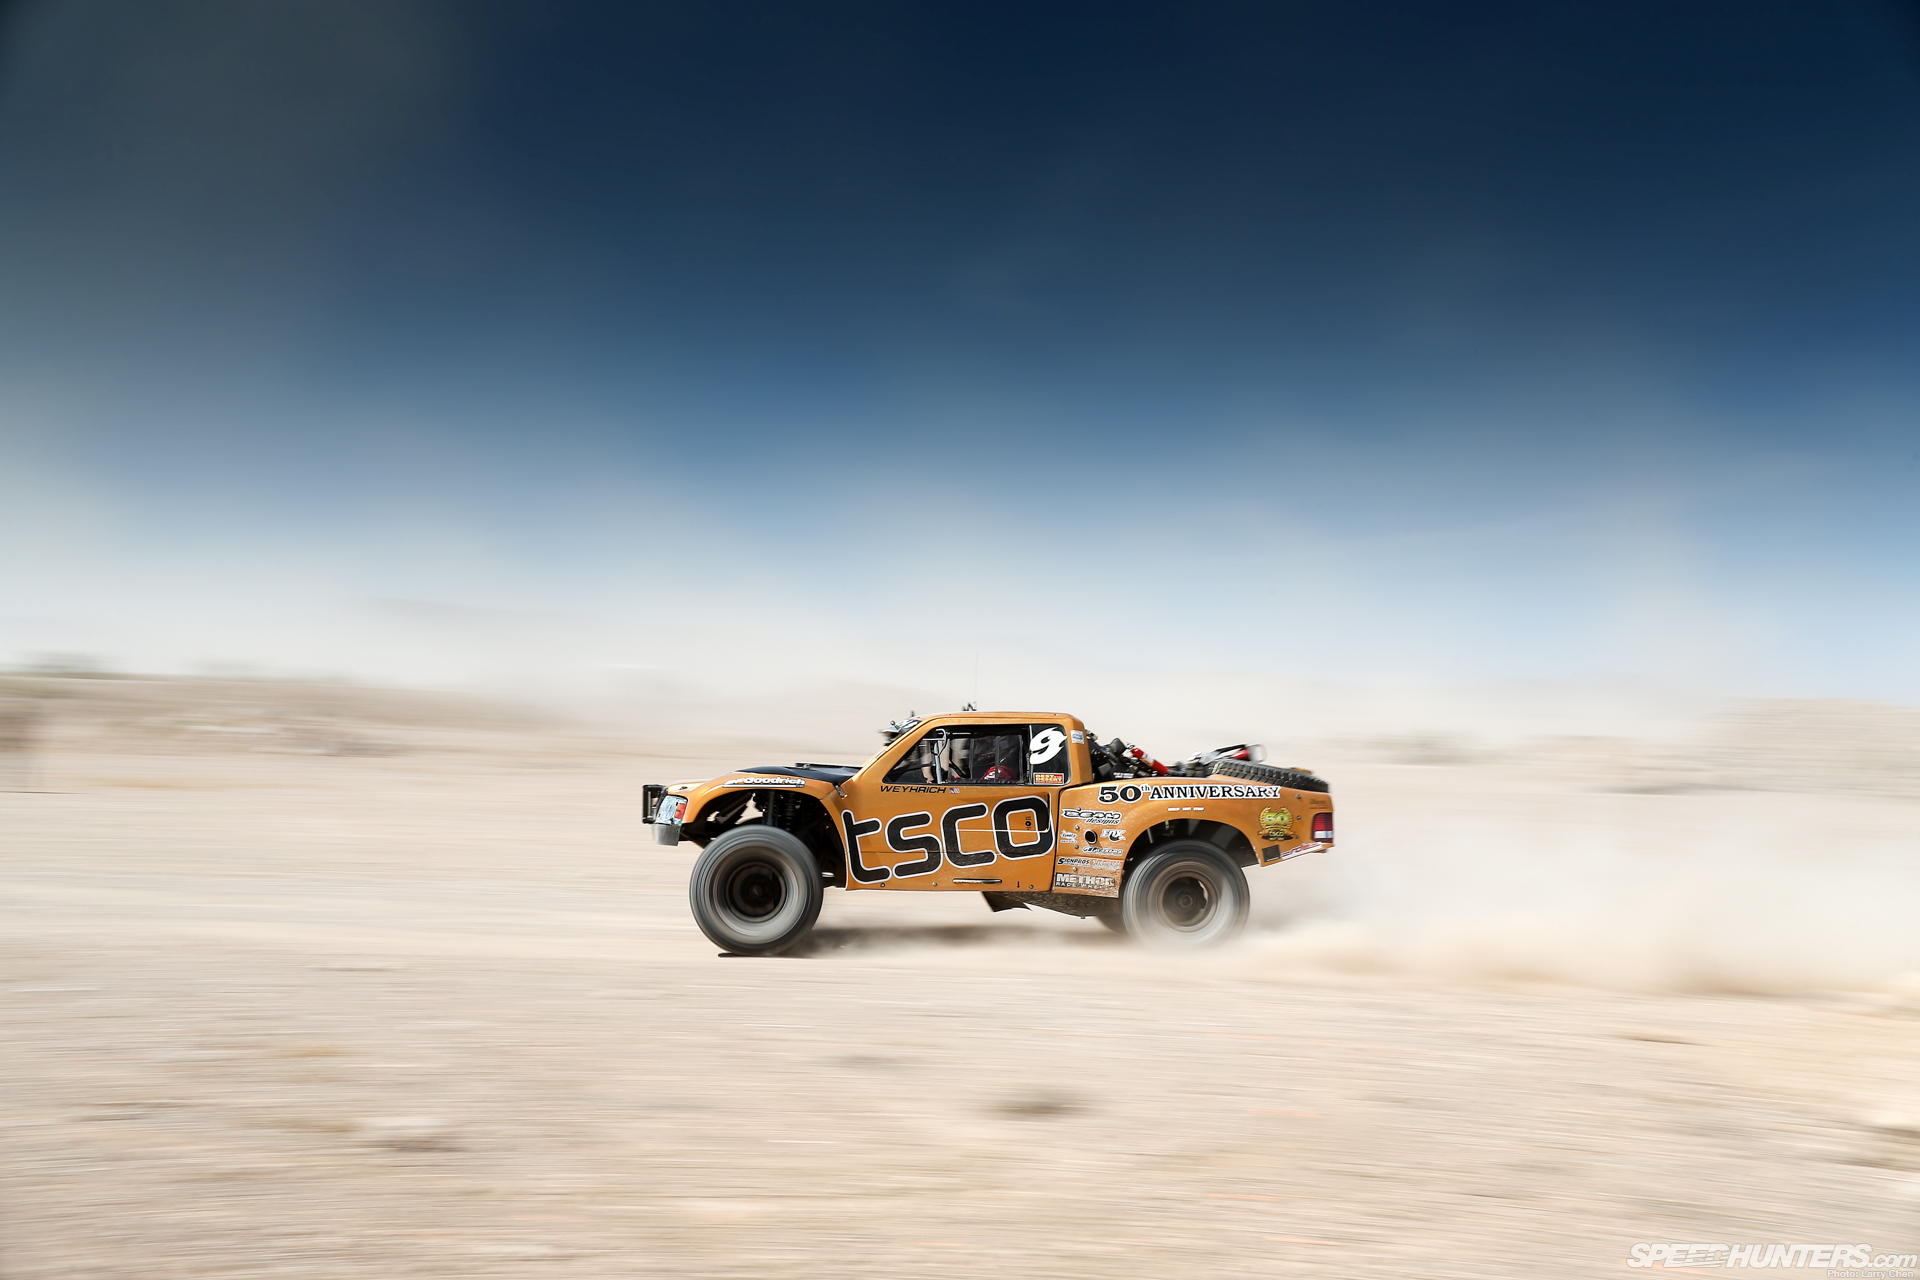 Trophy Truck Desert 4x4 off road racing race ford wallpaper background 1920x1280